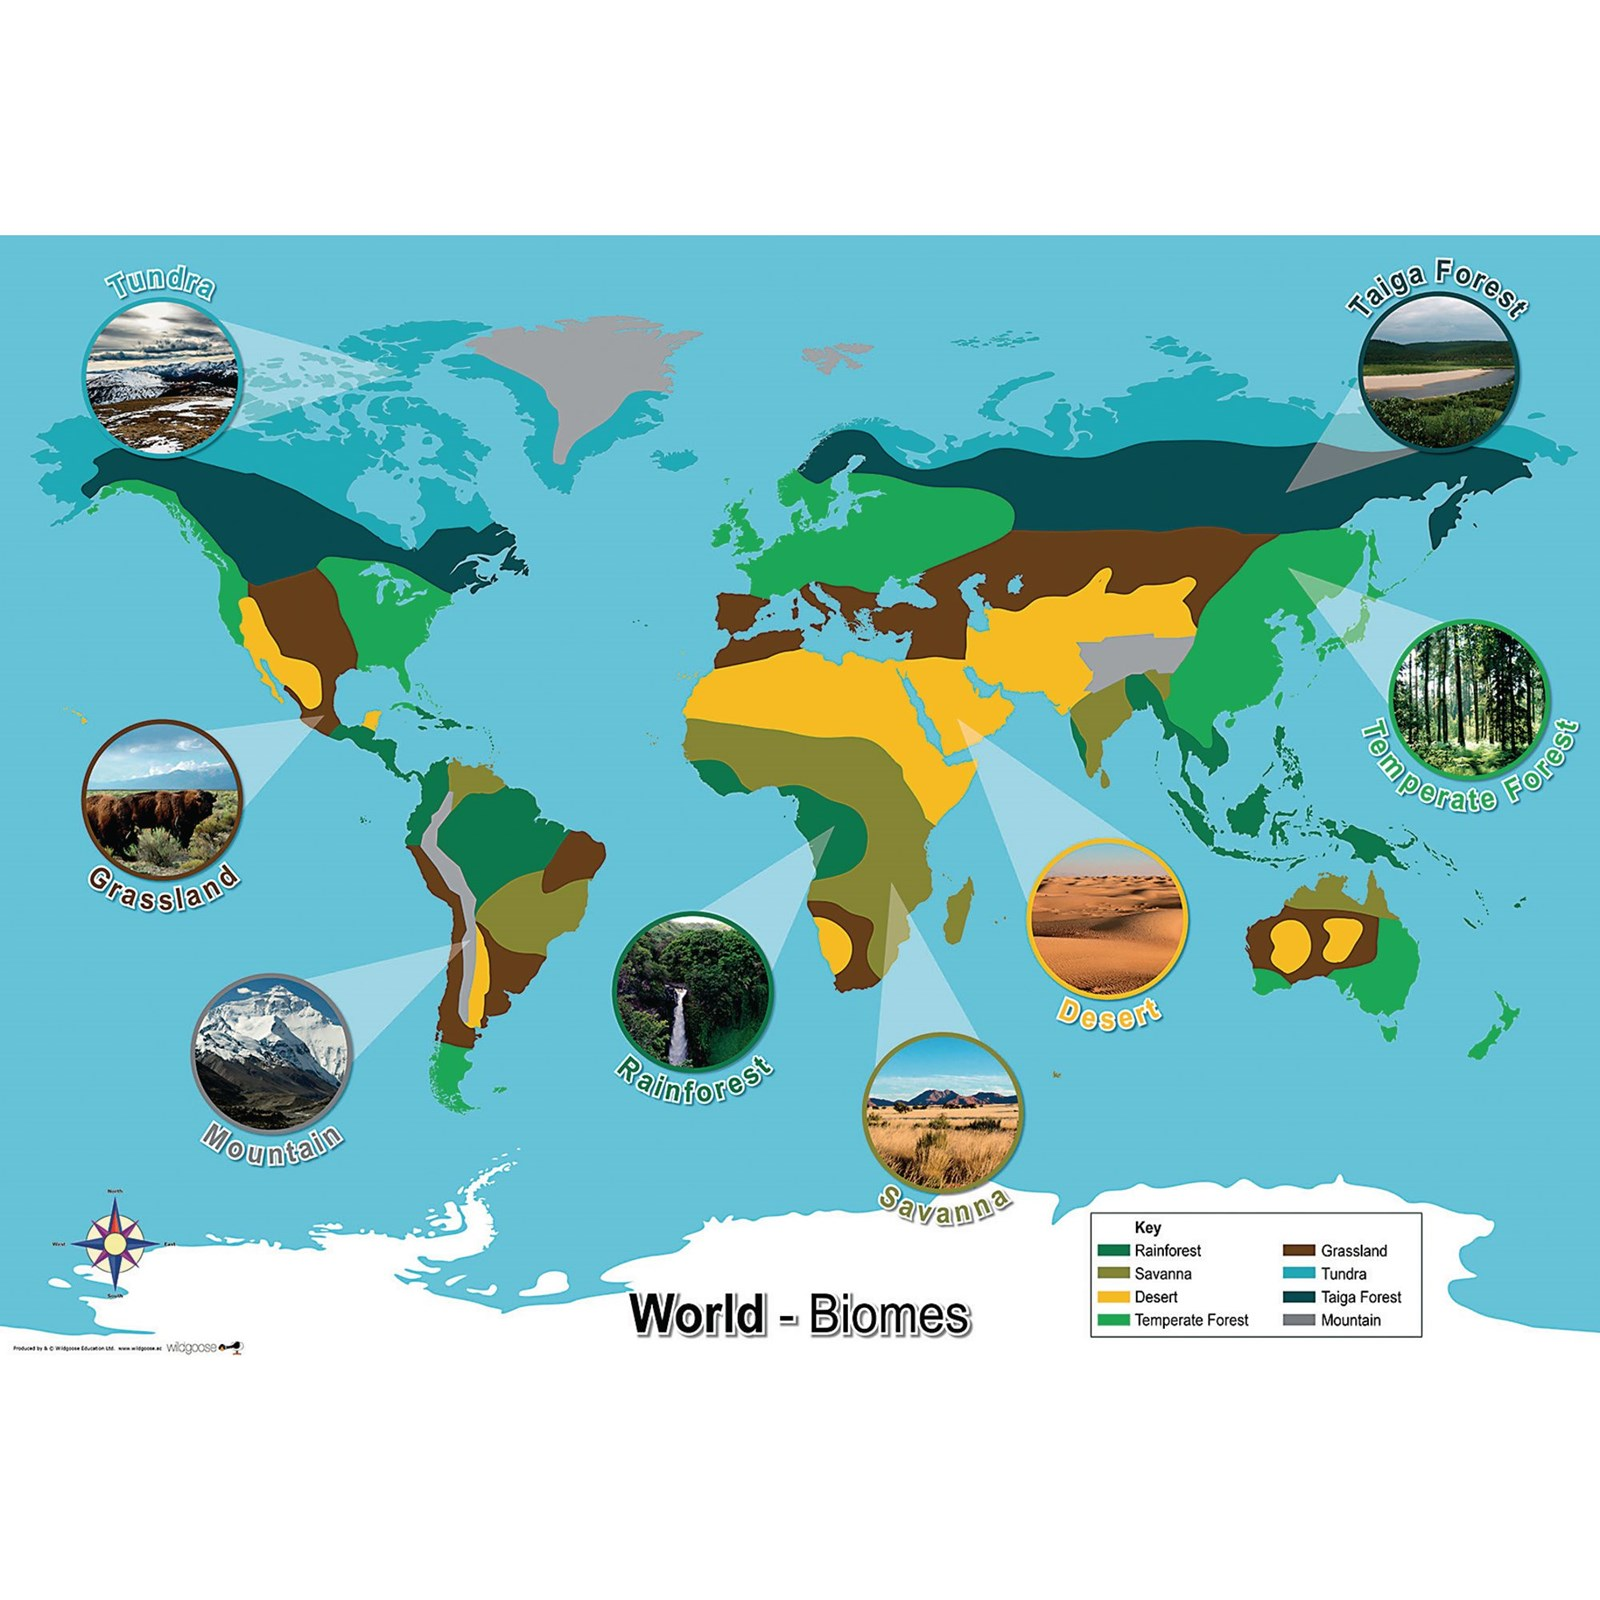 Temperate Rainforest World Map.World Biomes Map Findel International